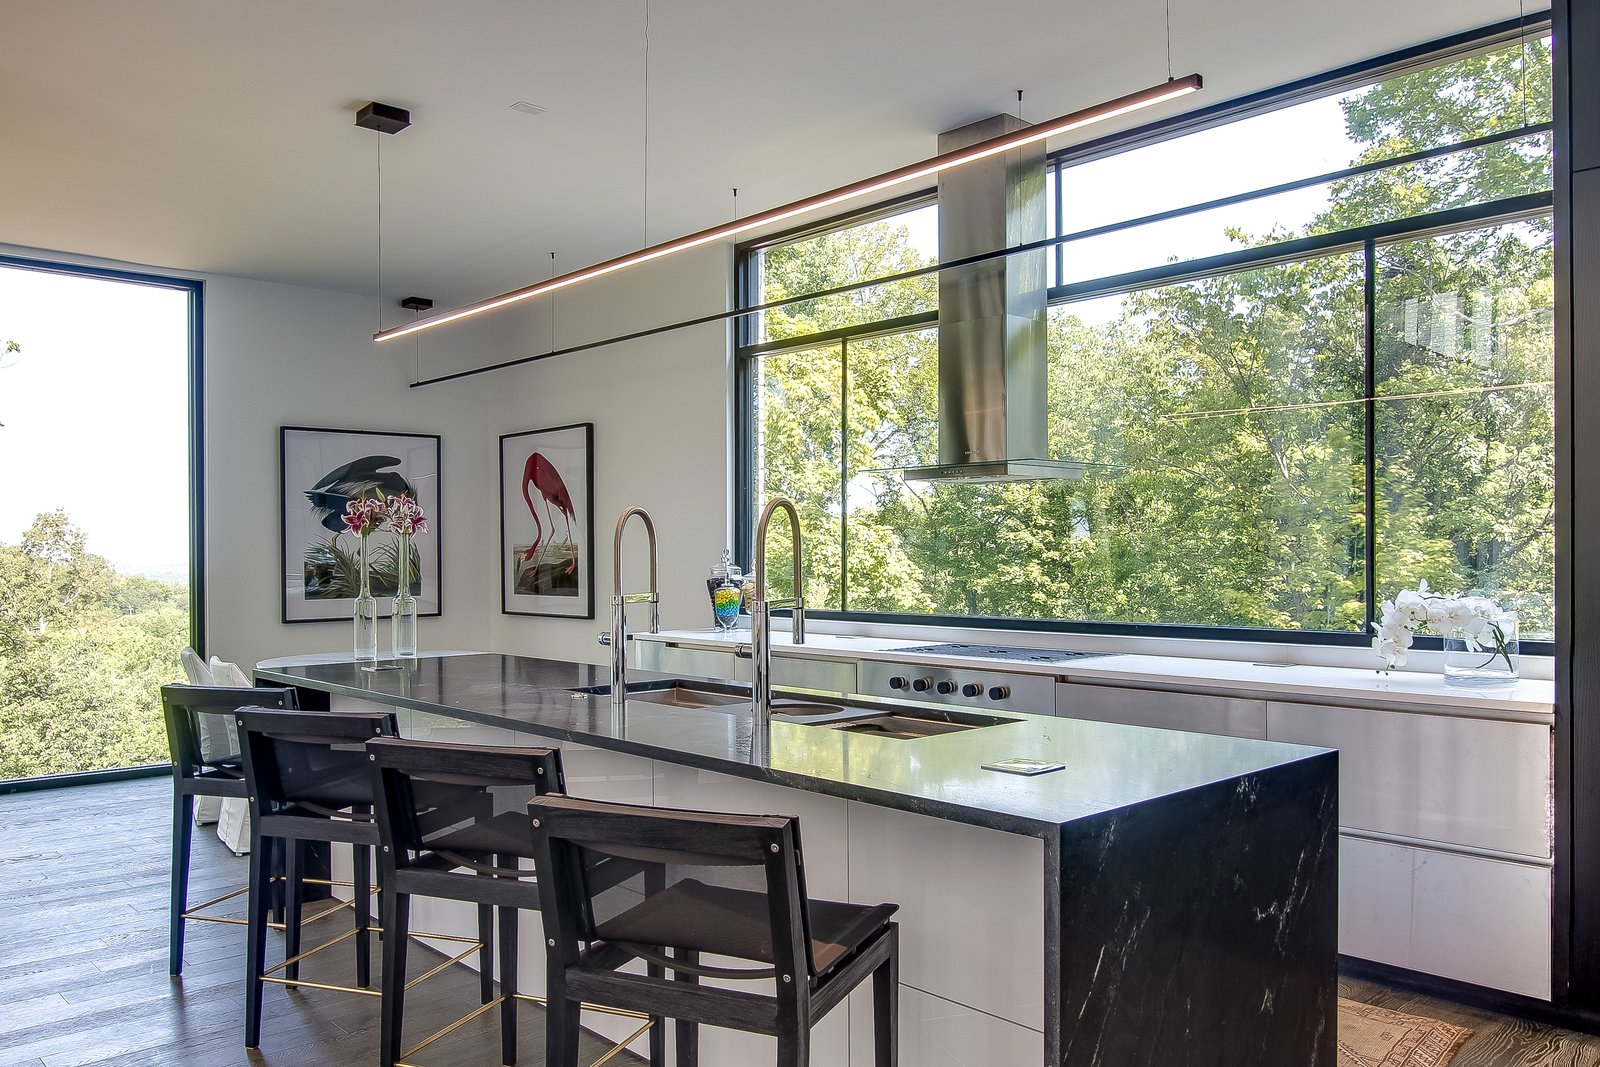 Kitchen, Marble Counter, Dark Hardwood Floor, Undermount Sink, Pendant Lighting, Metal Cabinet, Range Hood, and Cooktops  Modern View